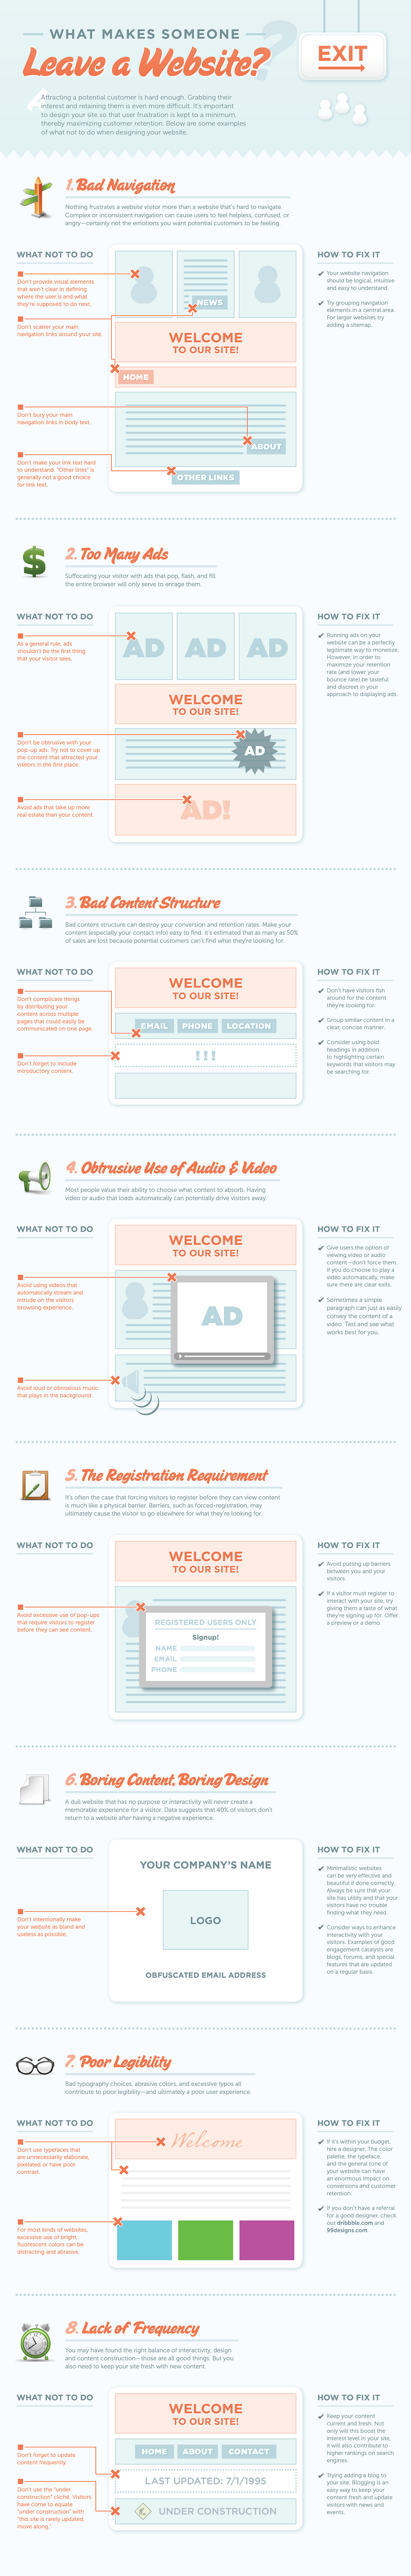 The Anatomy Of Web Design Why Someone Leave Your Website